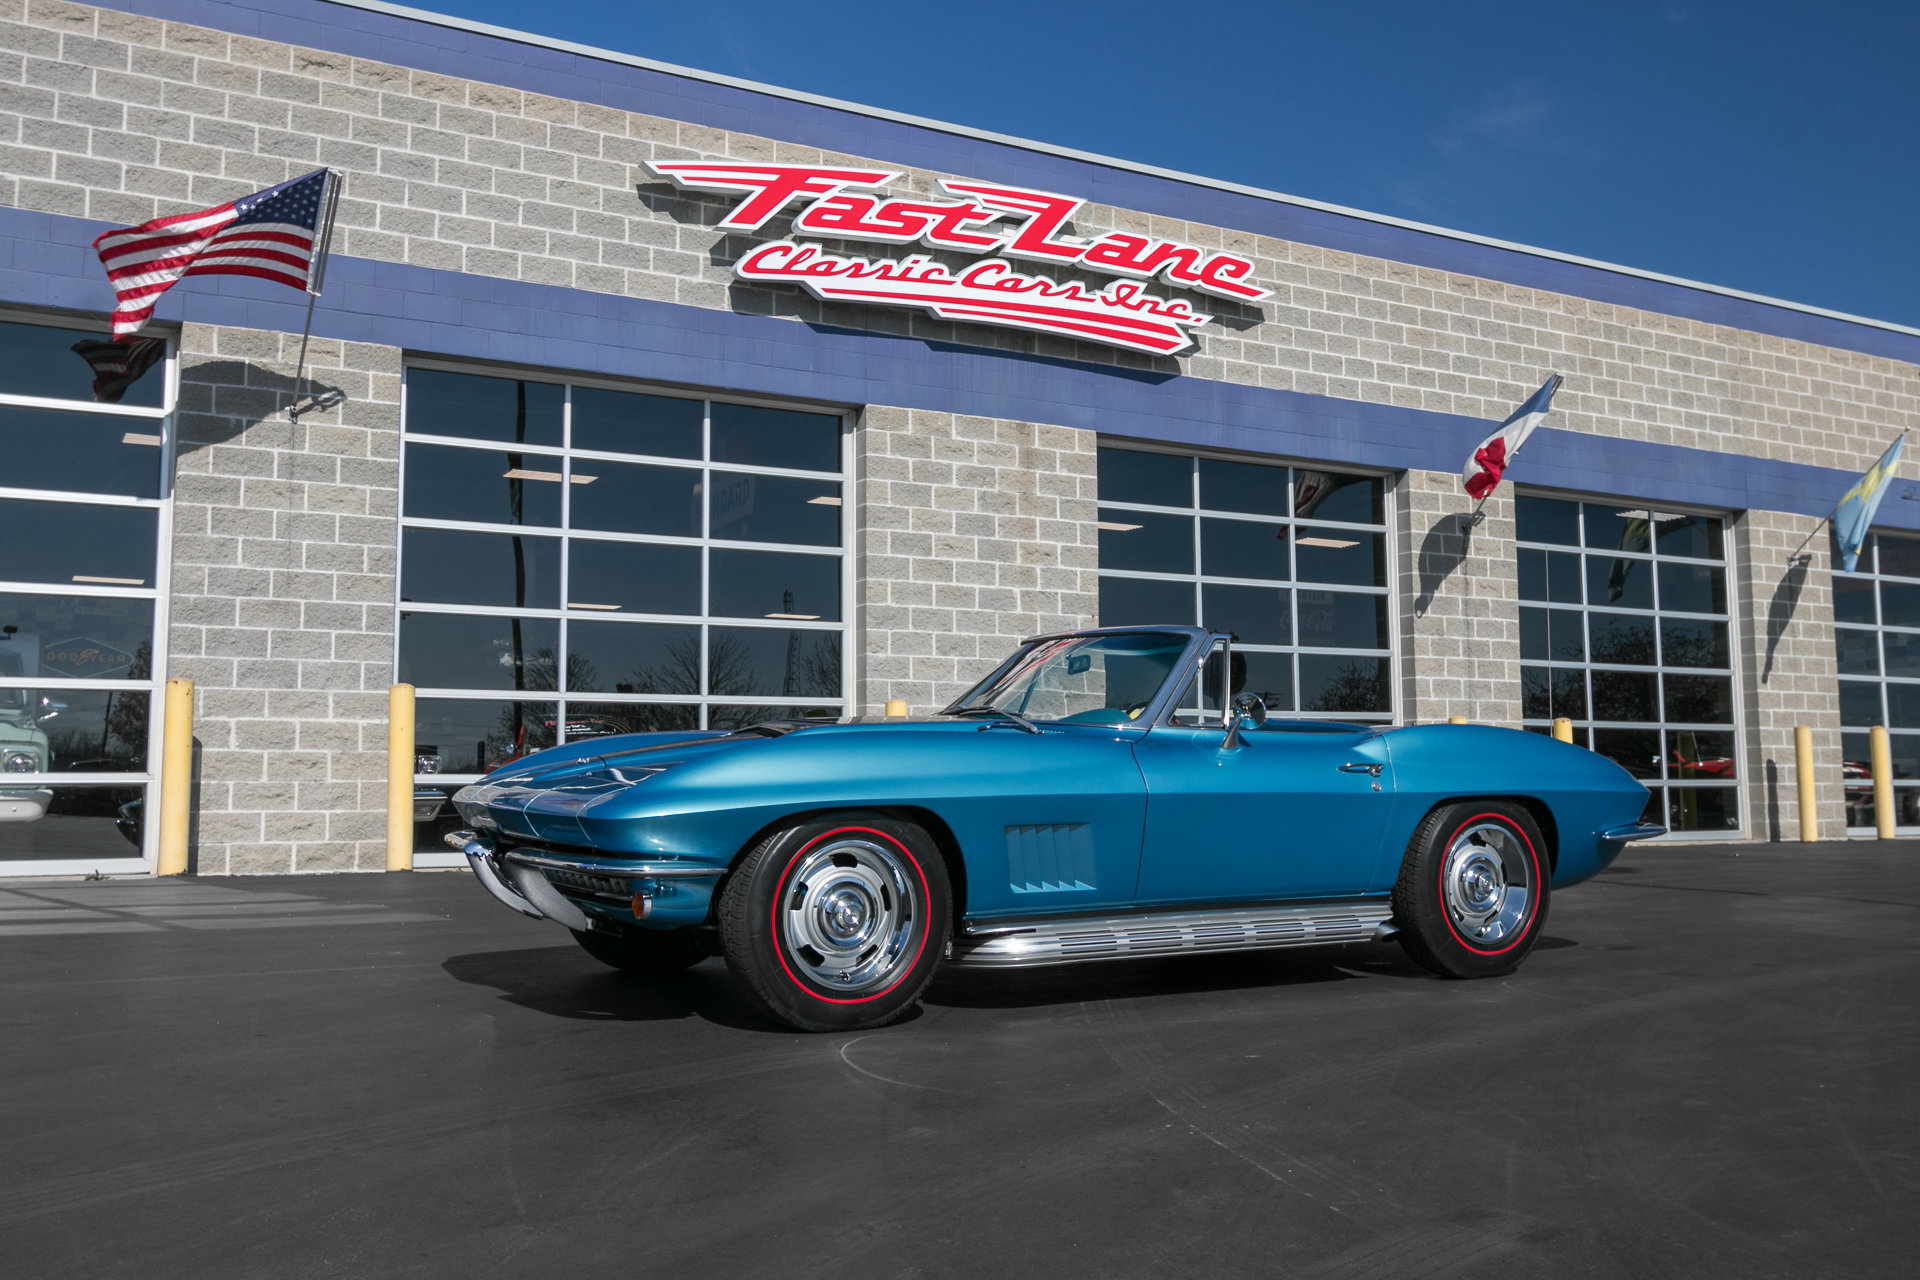 630673bc3fbe4 hd 1967 chevrolet corvette